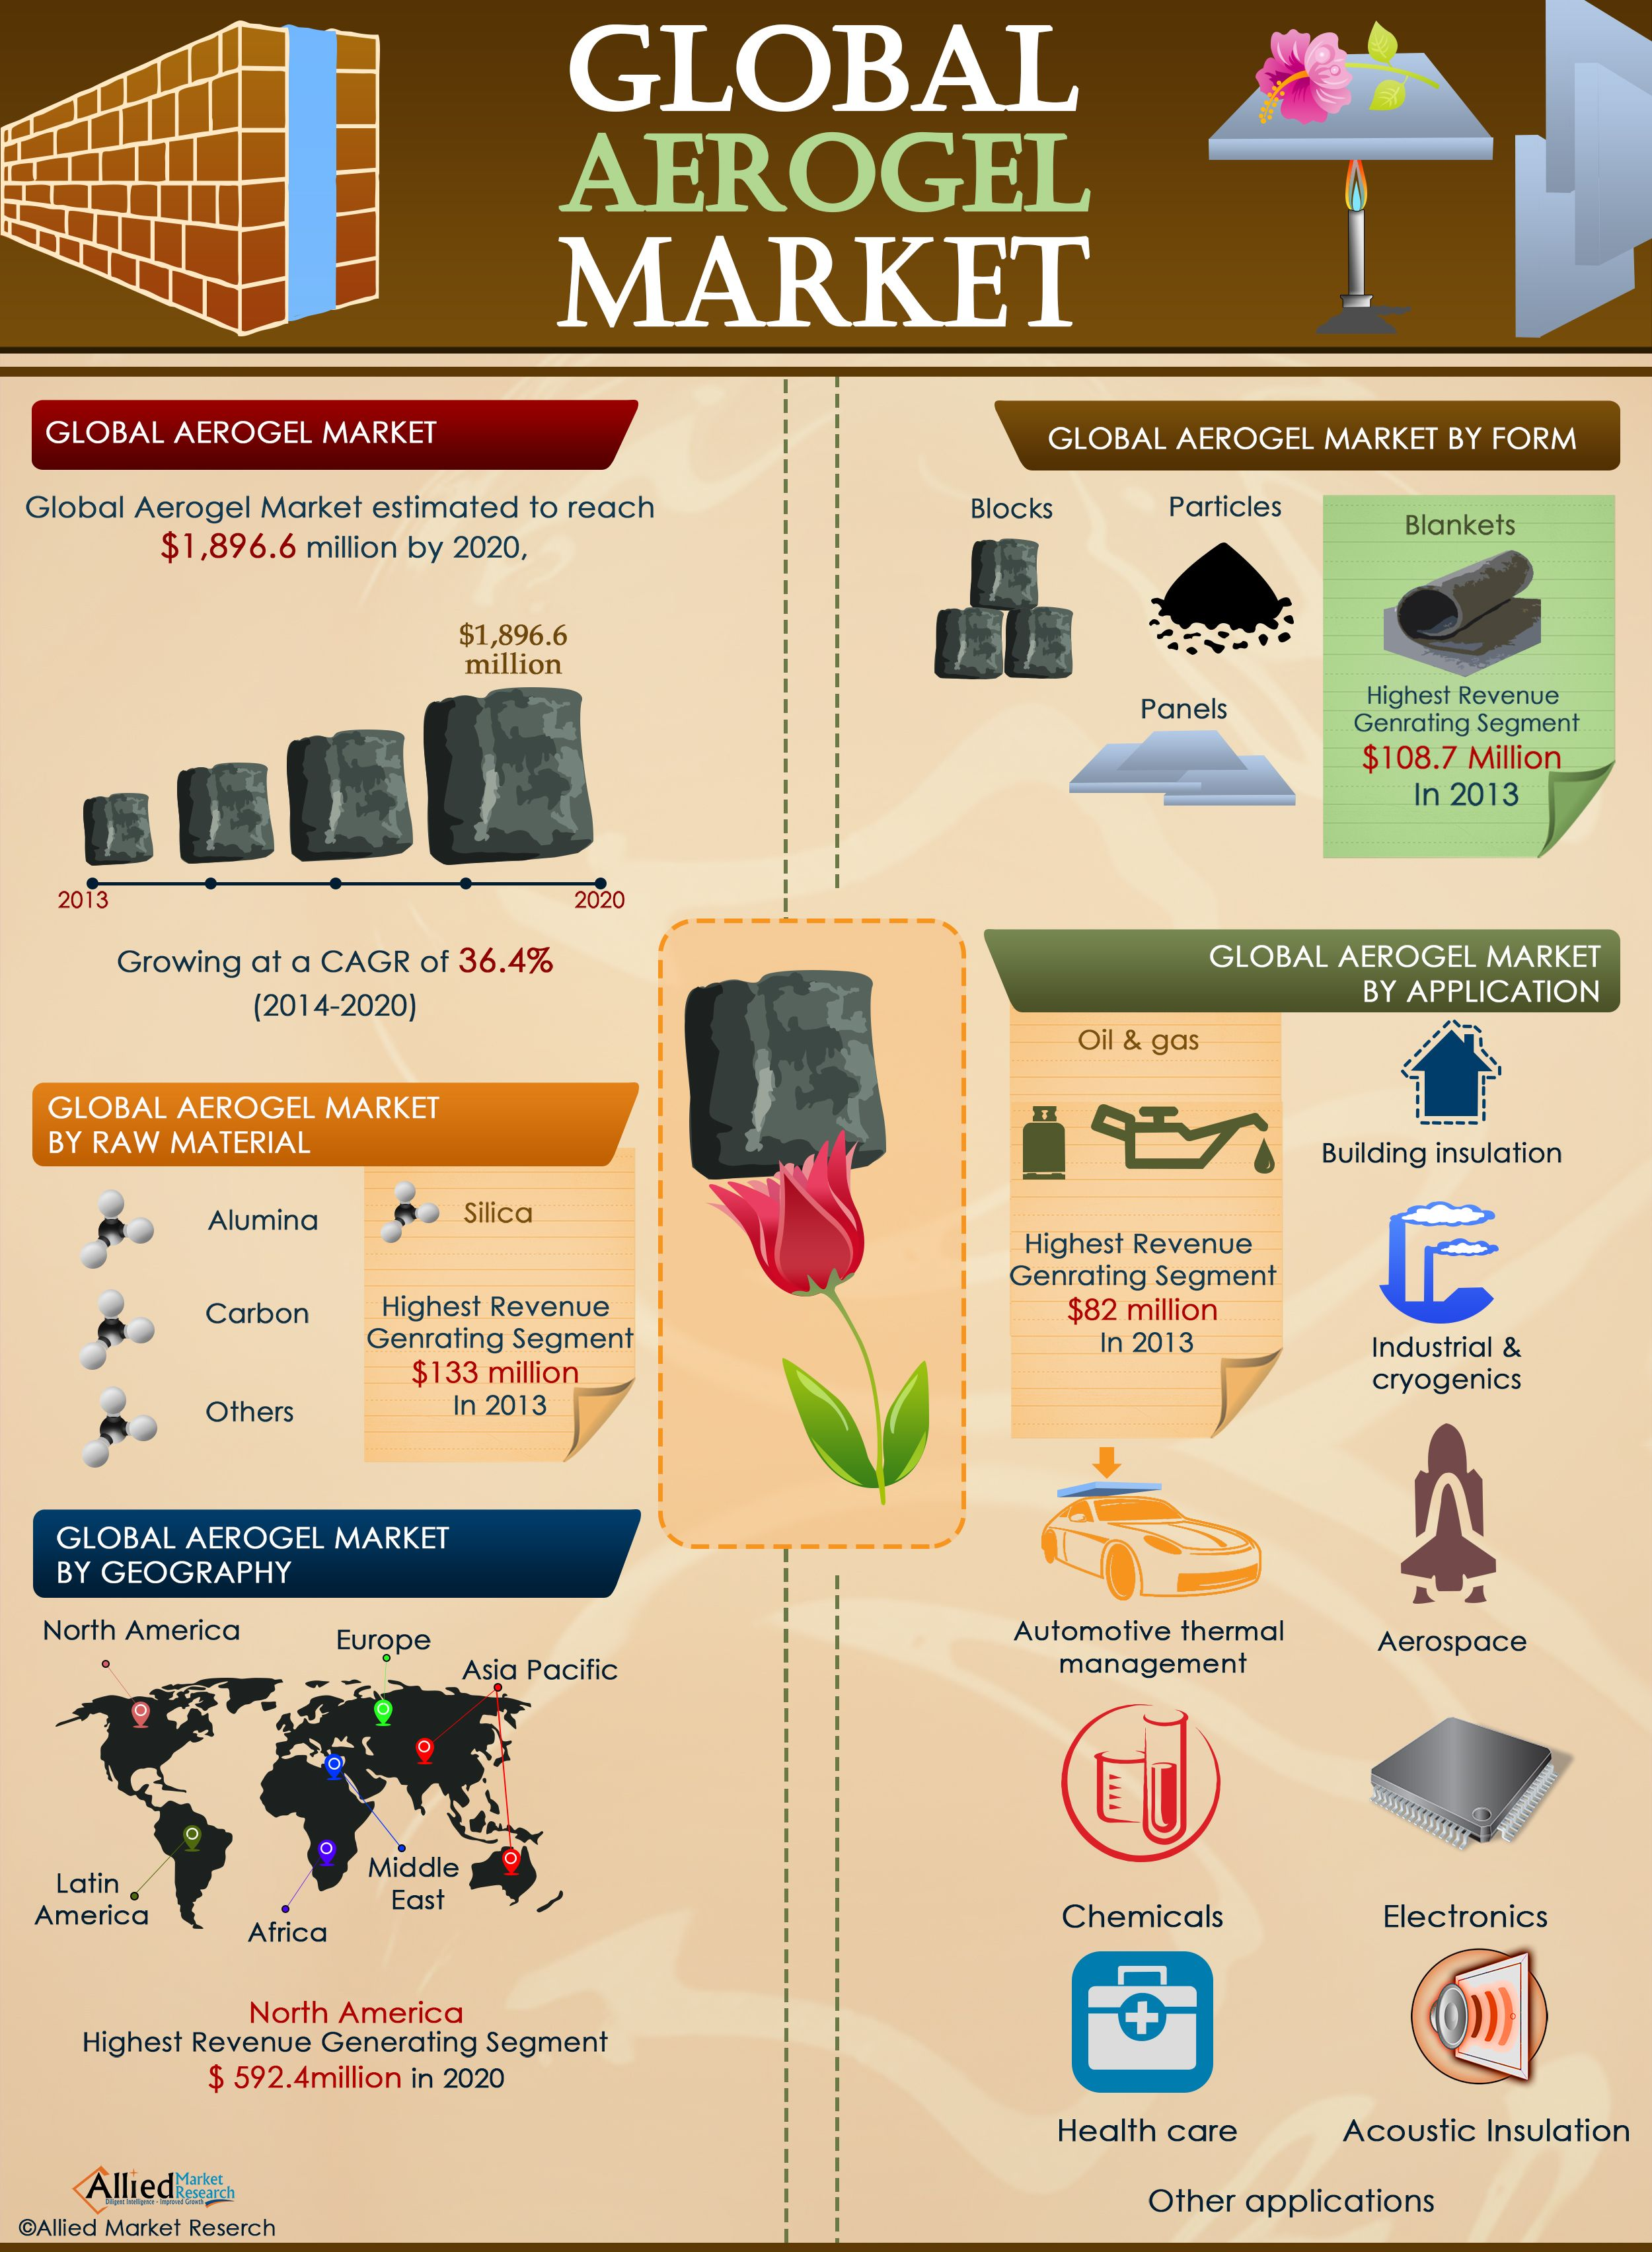 Aerogel Market Is Expected To Reach 1 896 6 Million Globally By 2020 Marketing Market Research Infographic